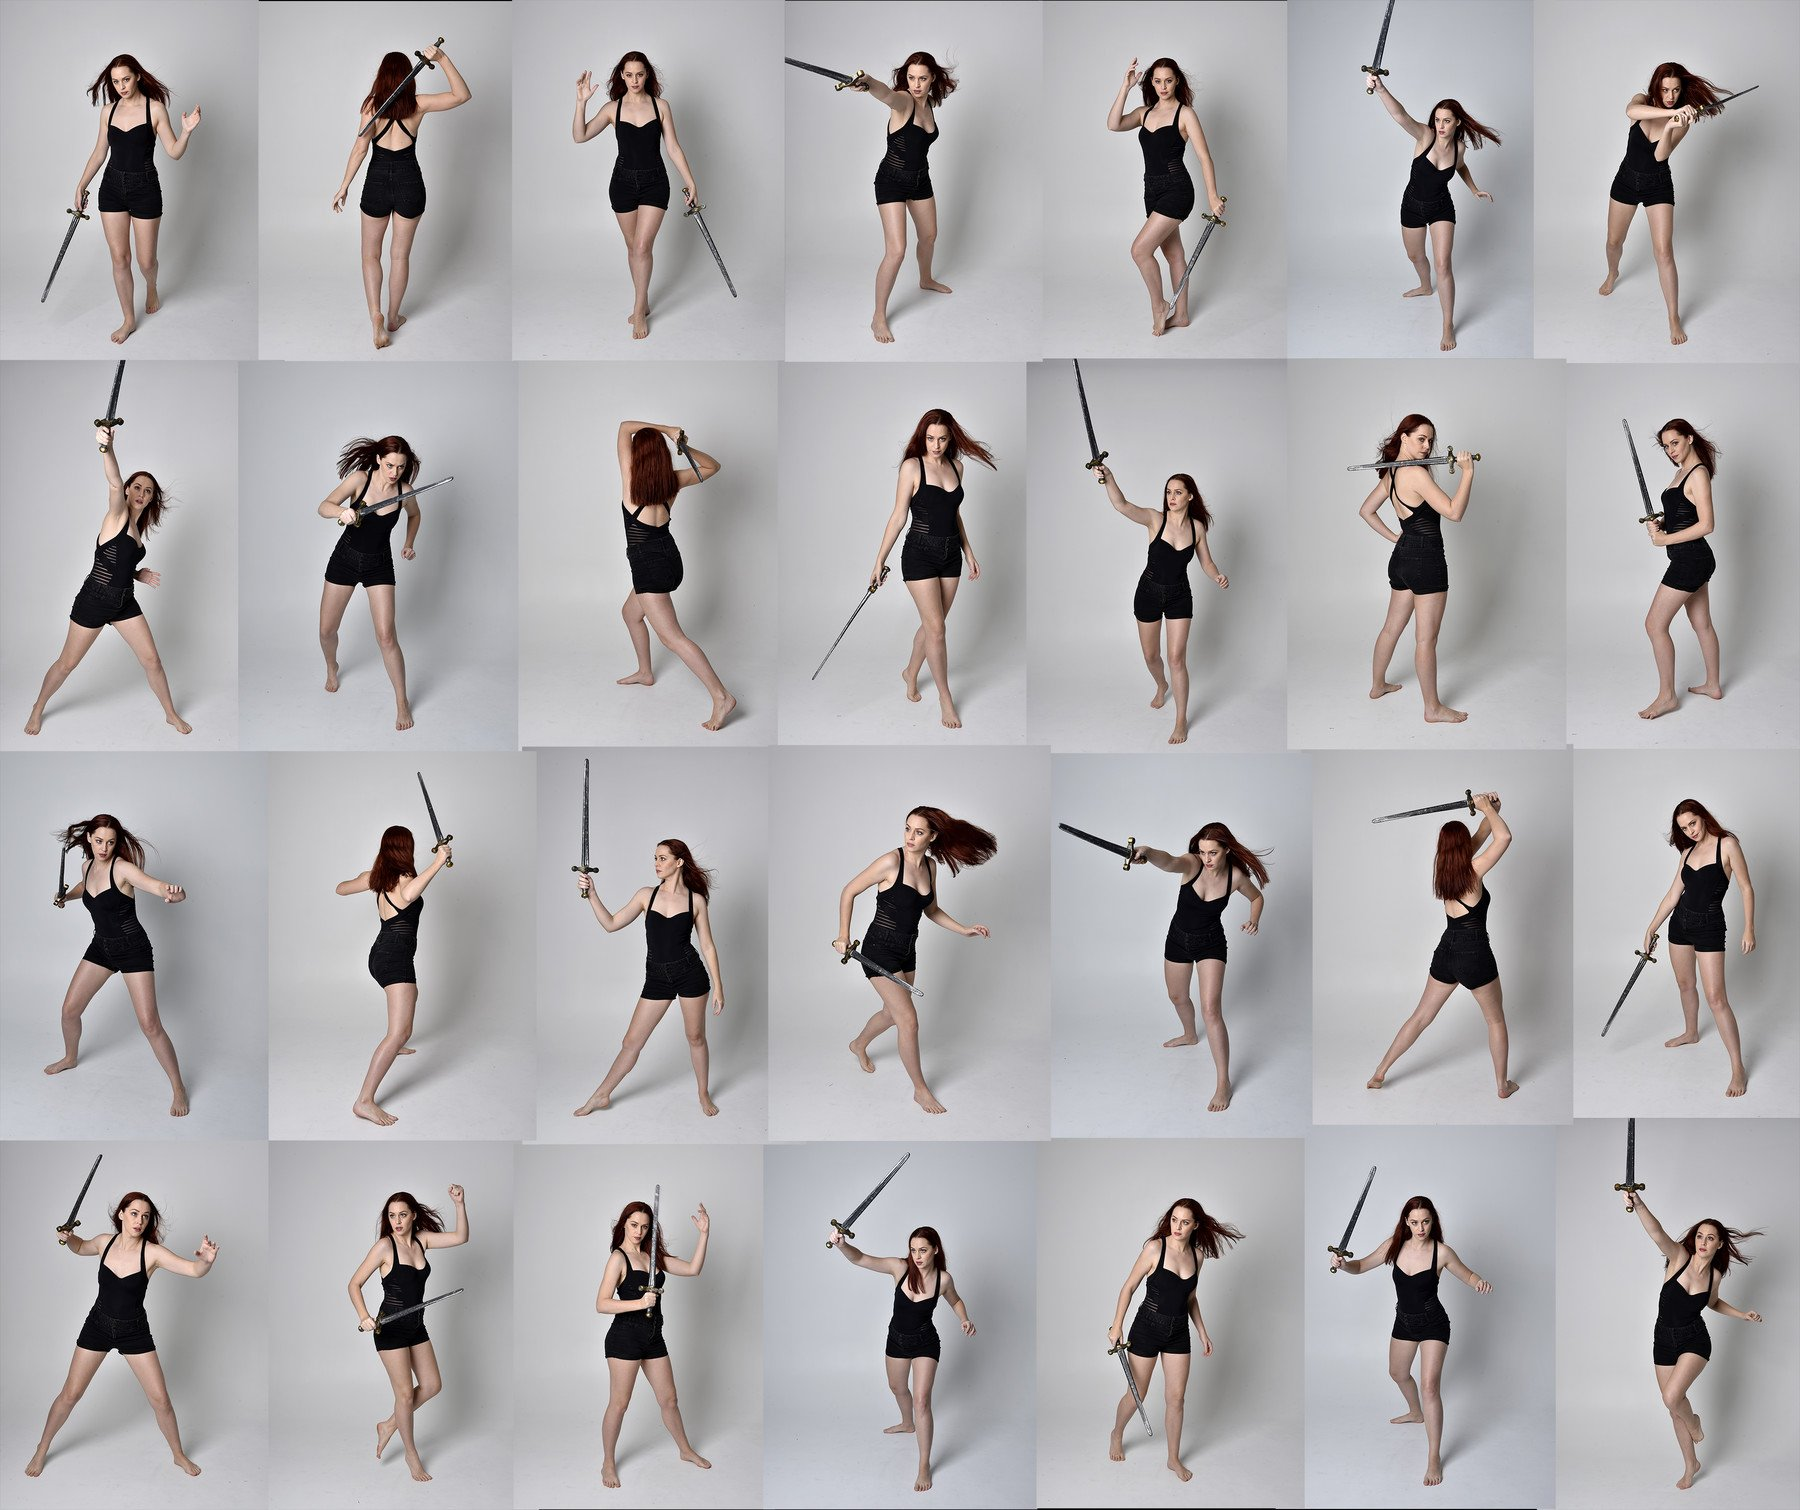 Artstation X148 Sword Fighting Pose Reference Pack Resources